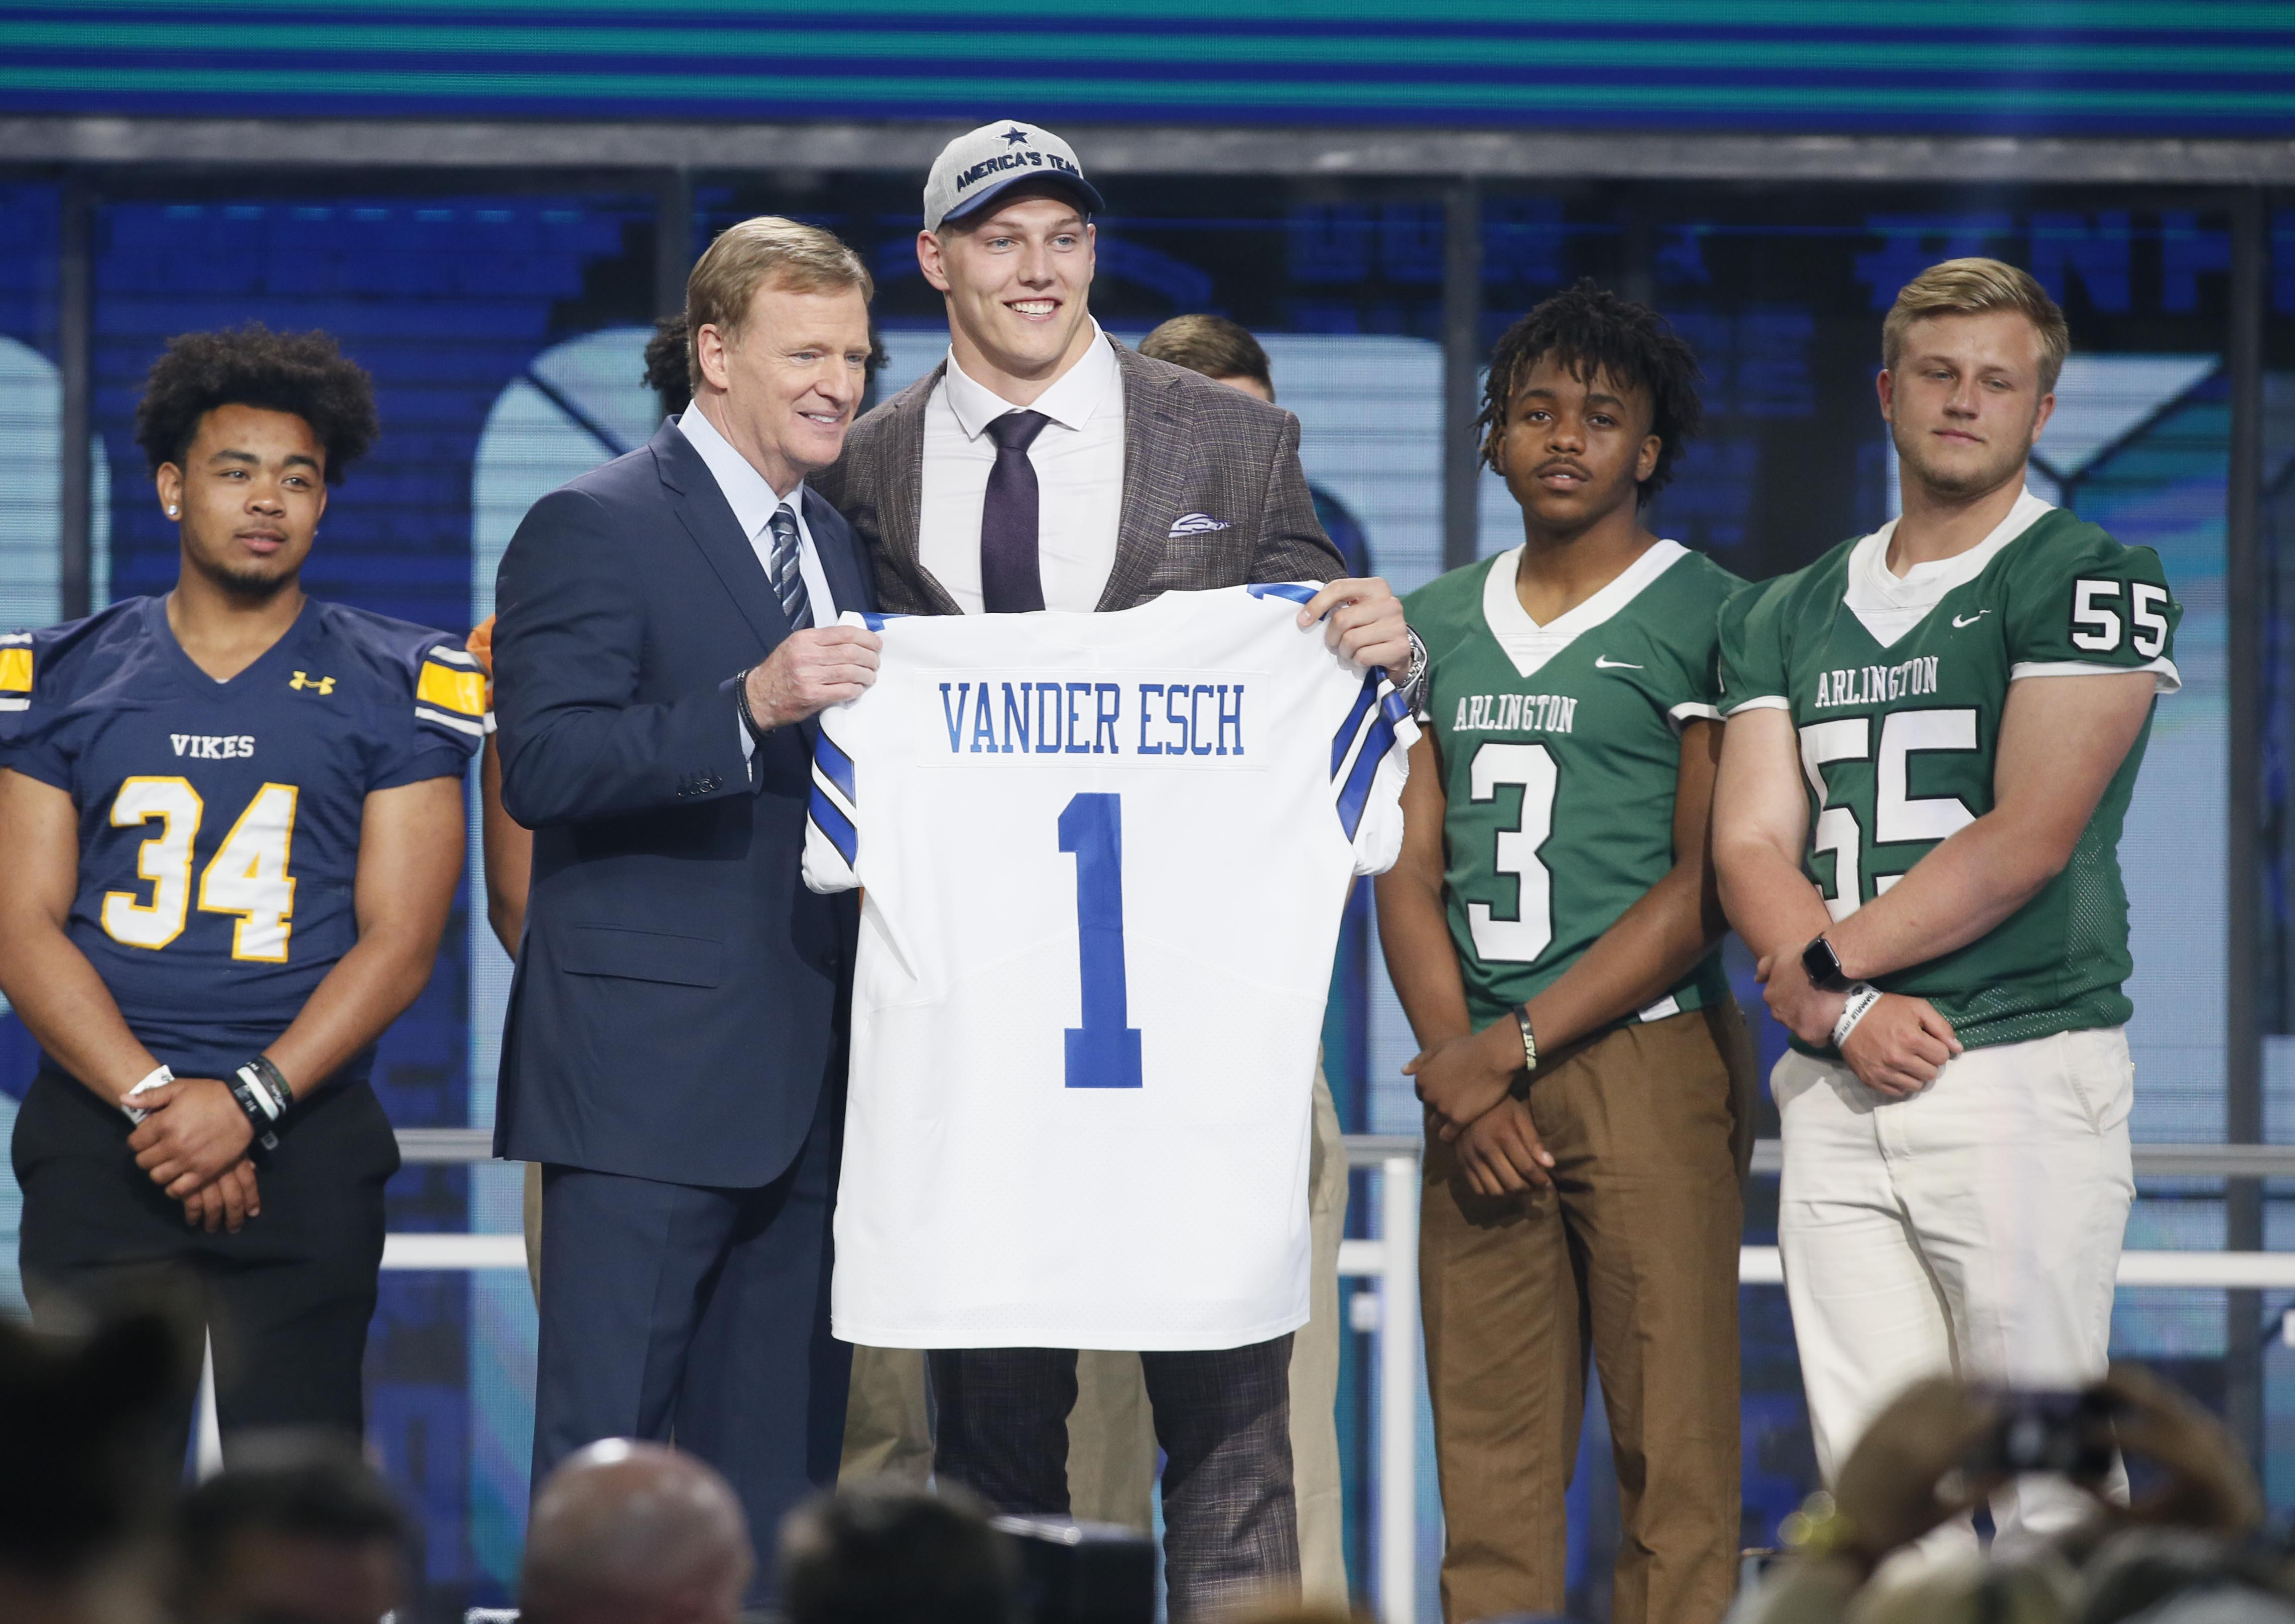 Apr 26, 2018; Arlington, TX, USA; Leighton Vander Esch (Boise State) with NFL commissioner Roger Goodell after being selected as the number nineteen overall pick to the Dallas Cowboys in the first round of the 2018 NFL Draft at AT&T Stadium.  Mandatory Credit: Tim Heitman-USA TODAY Sports